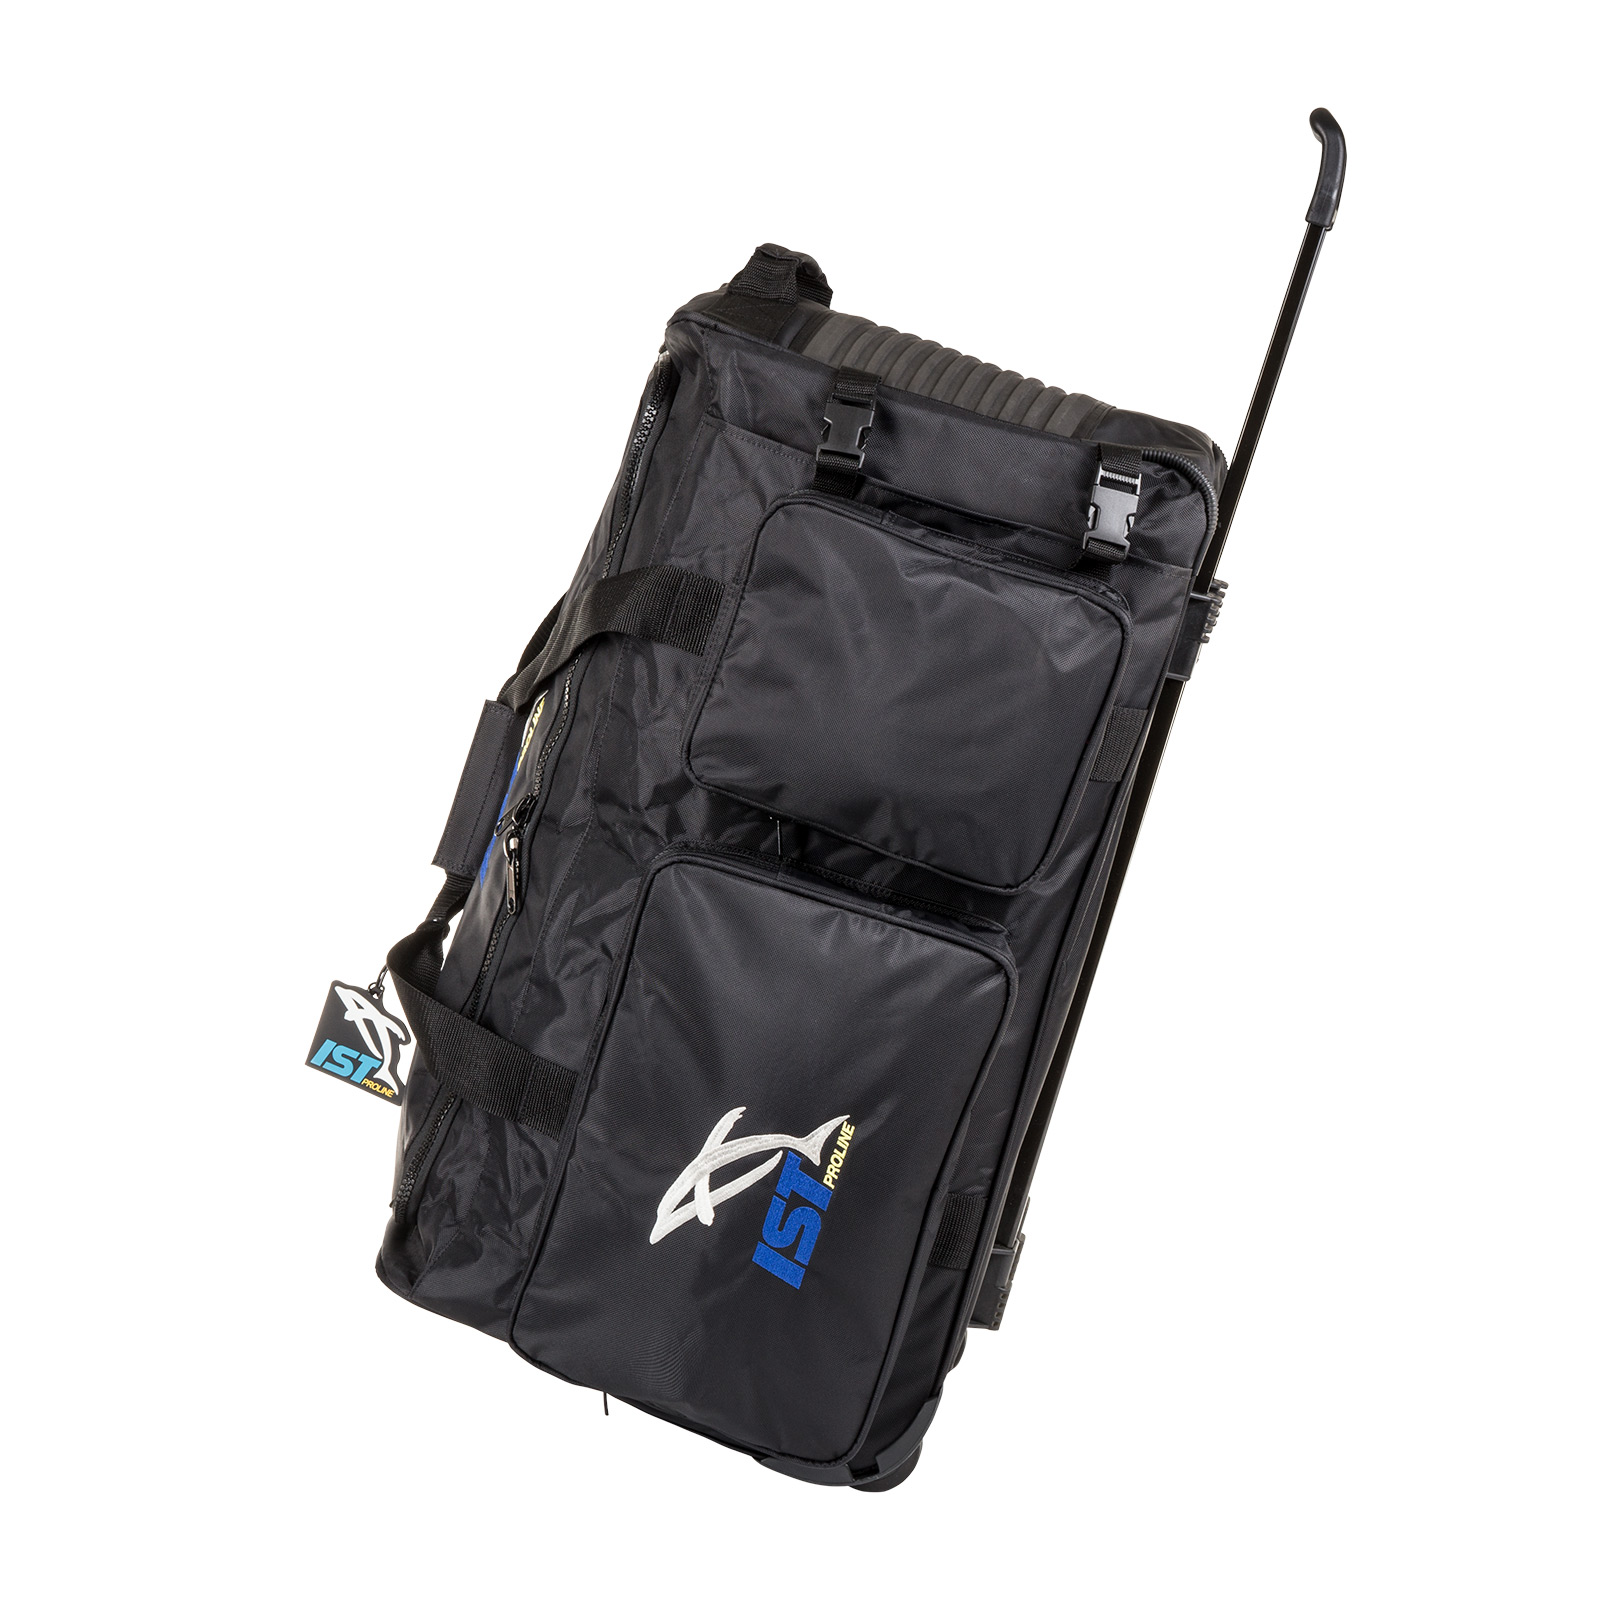 Heavy Duty Diver's Roller Bag